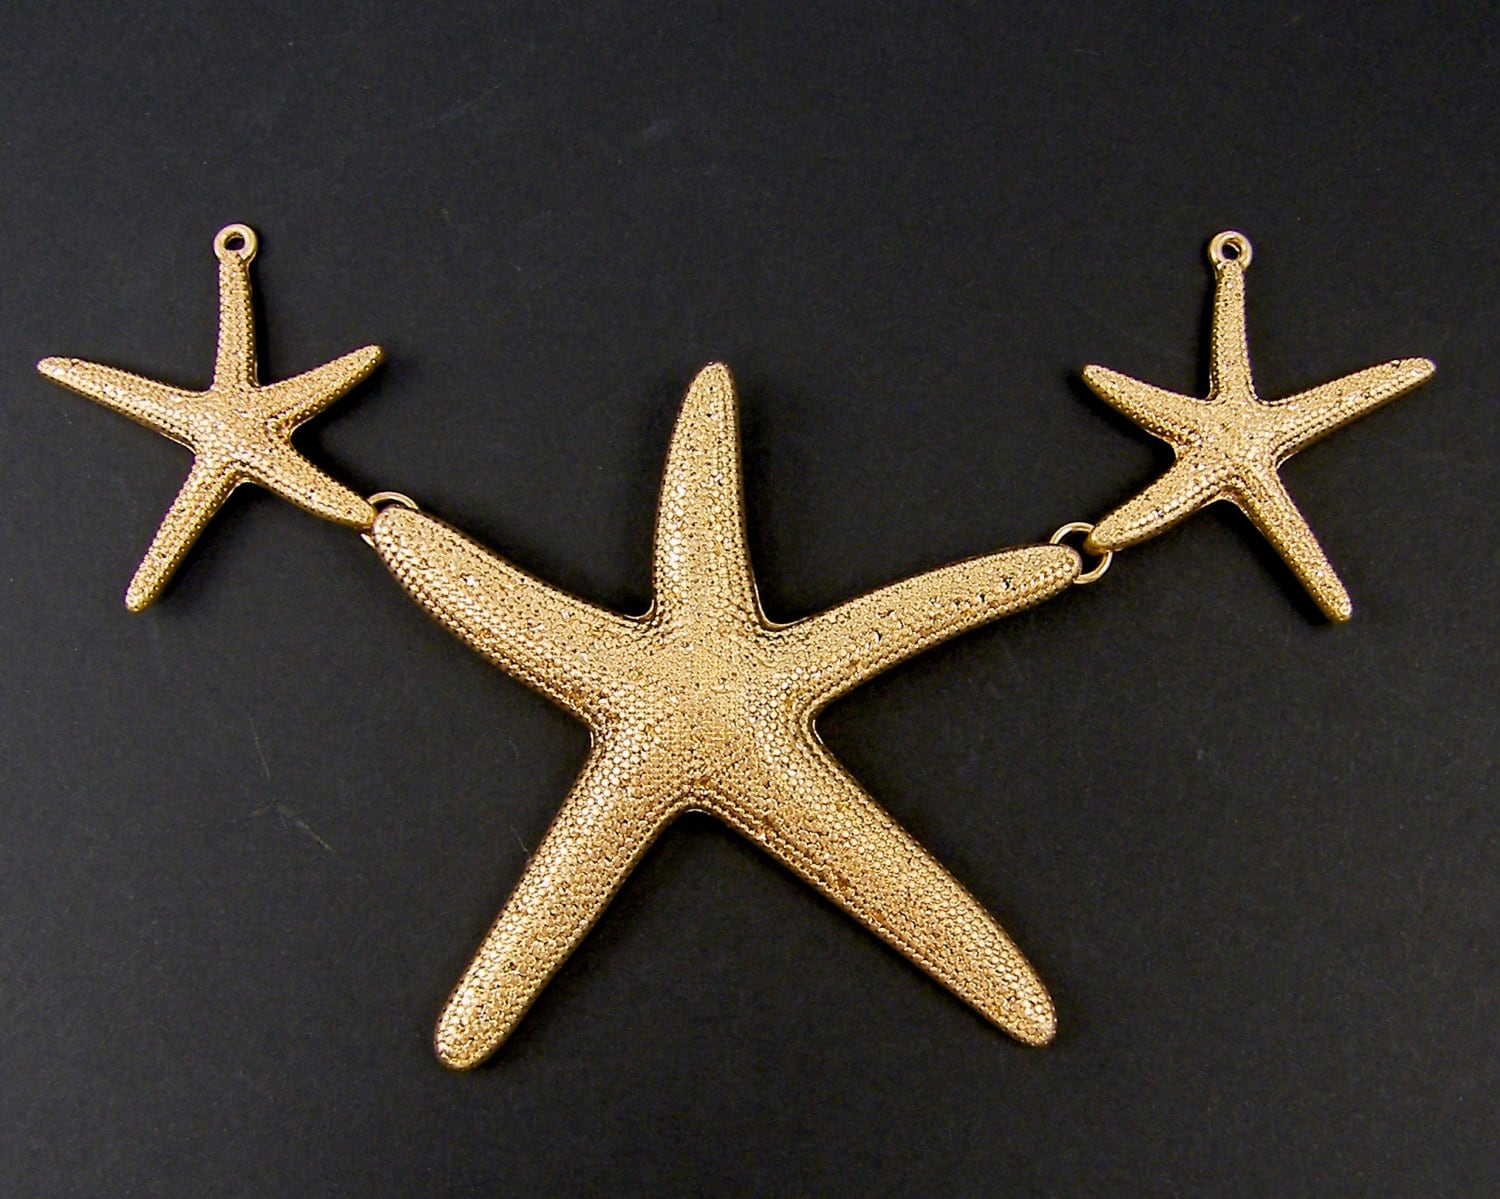 large gold starfish pendant bib necklace statement focal point